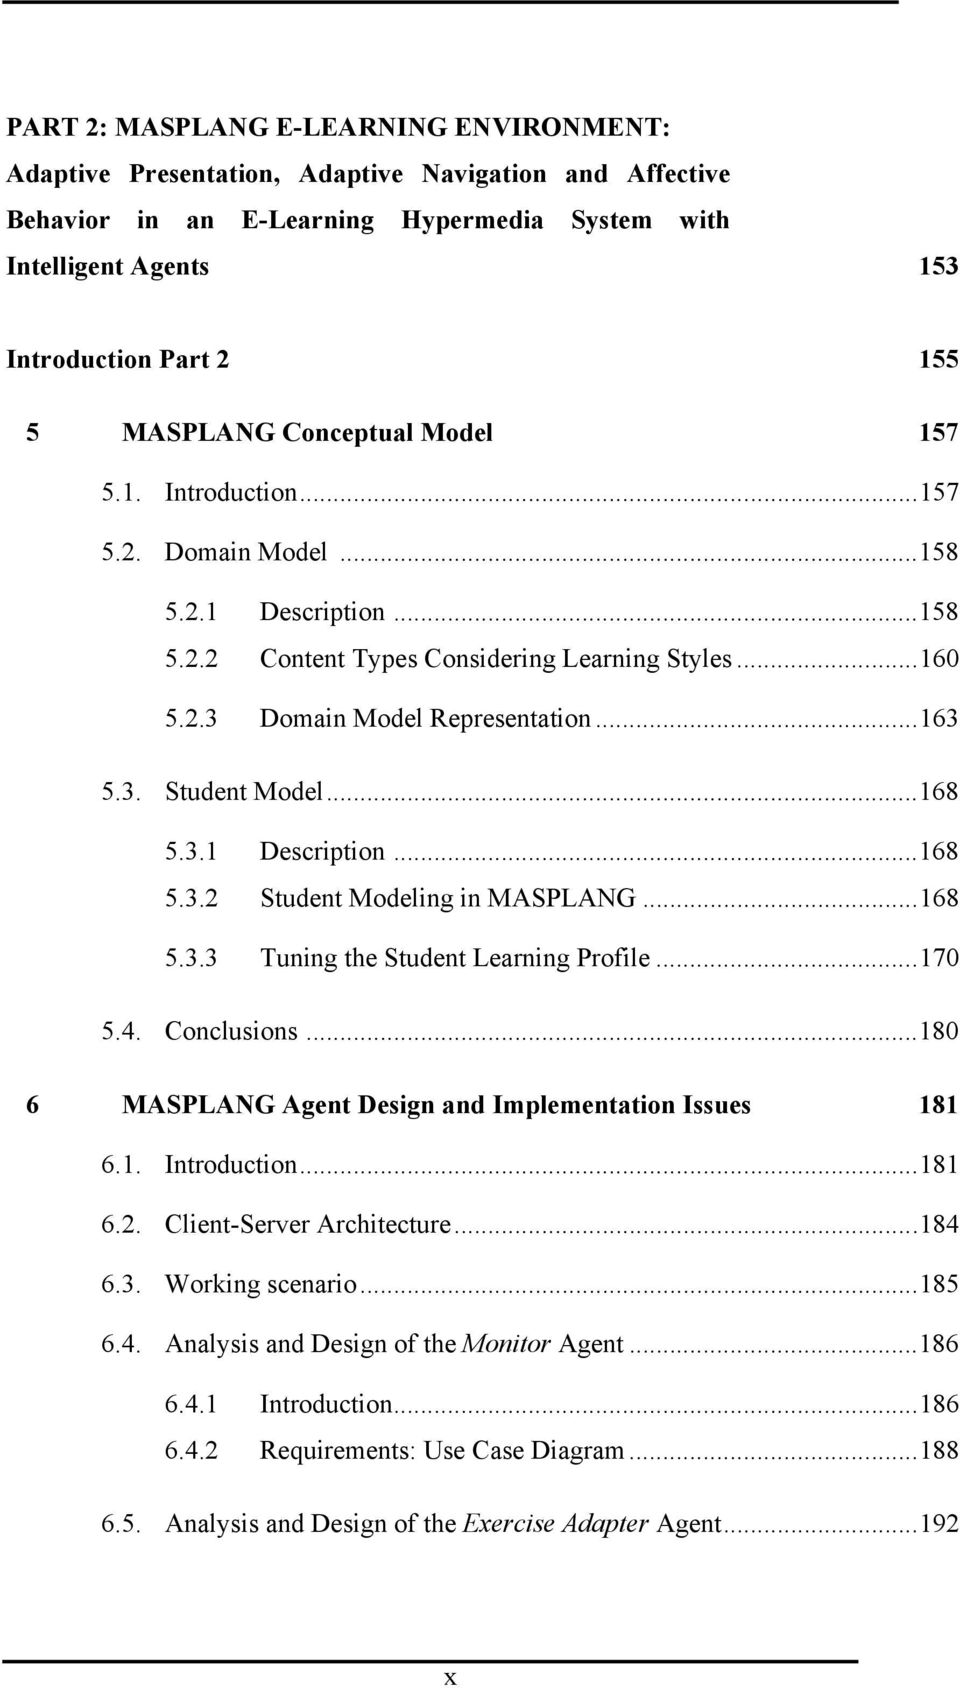 ..168 5.3.1 Description...168 5.3.2 Student Modeling in MASPLANG...168 5.3.3 Tuning the Student Learning Profile...170 5.4. Conclusions...180 6 MASPLANG Agent Design and Implementation Issues 181 6.1. Introduction.